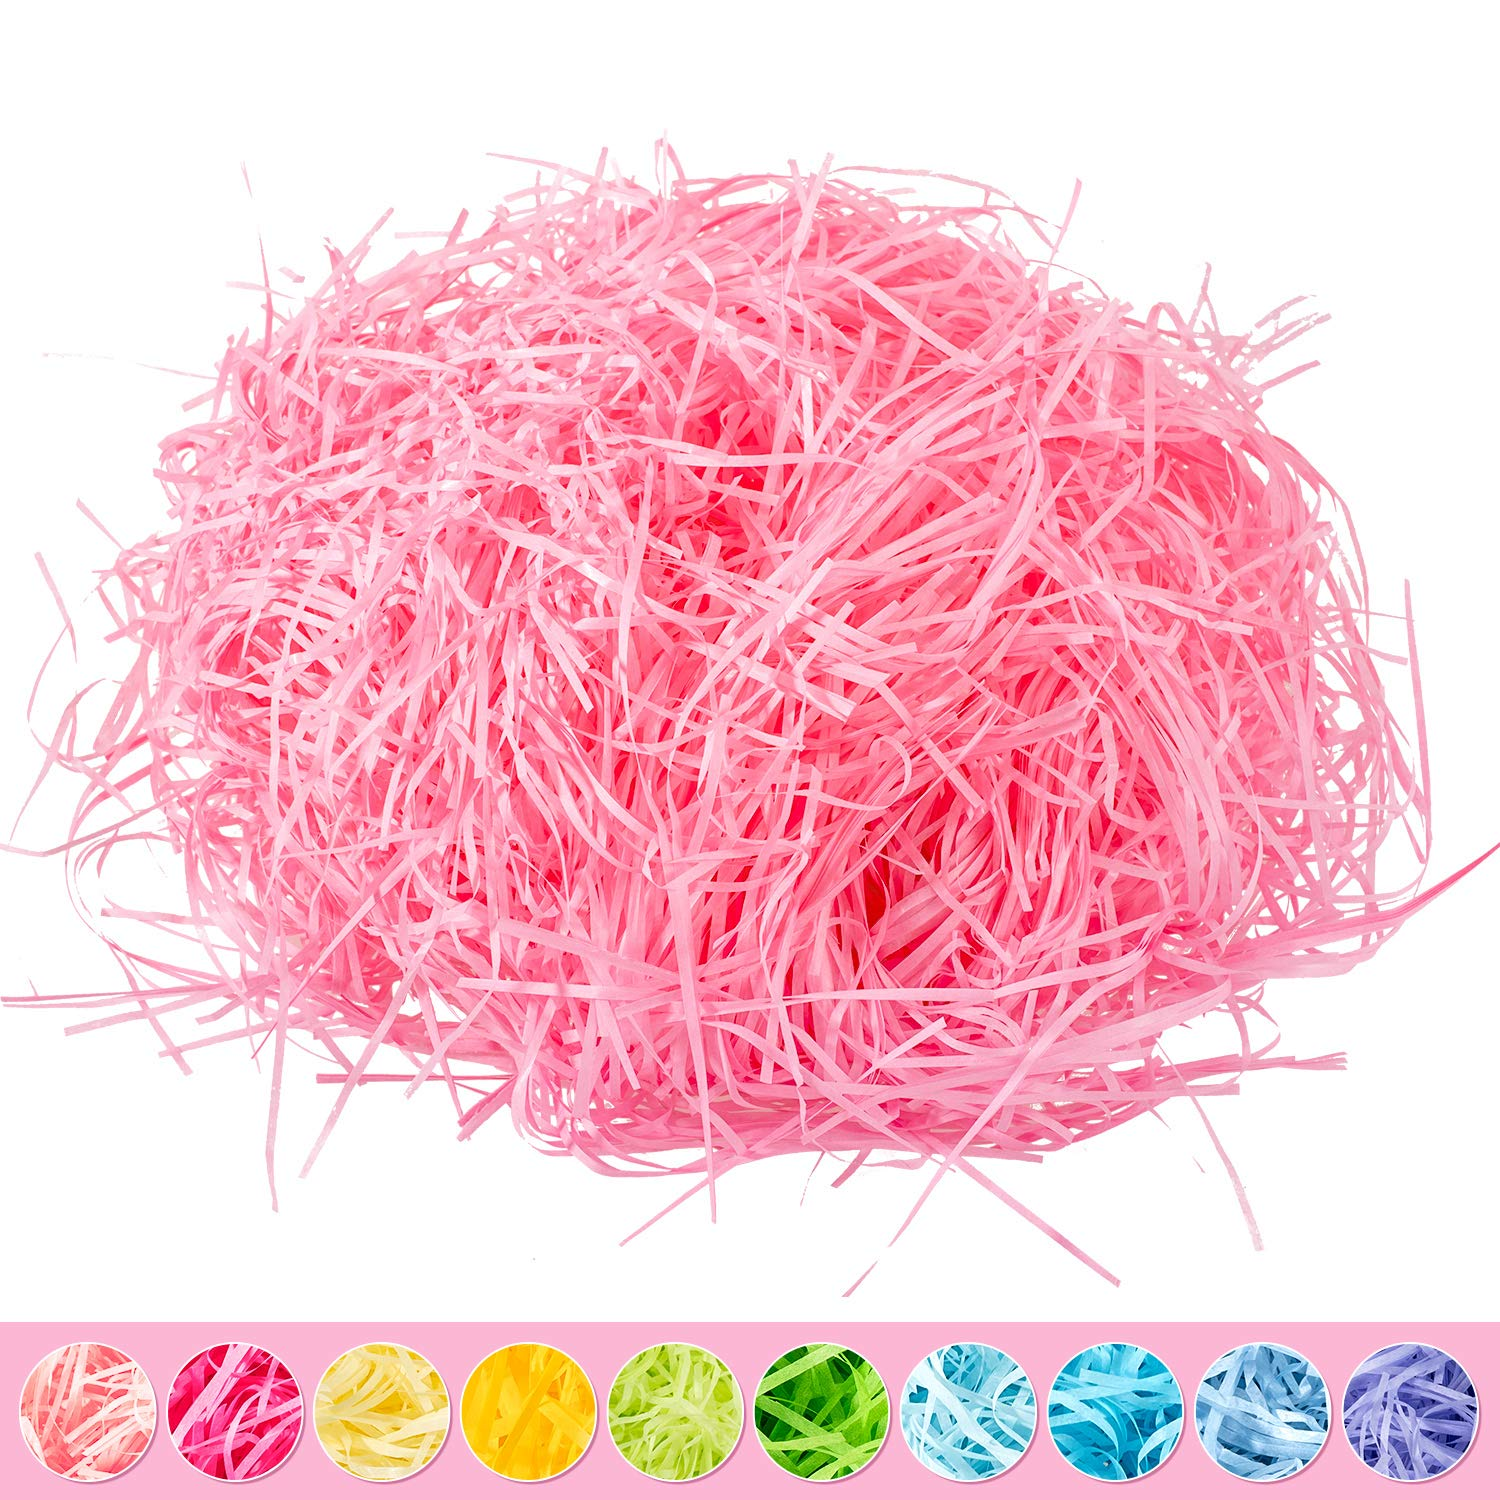 Whaline Easter Basket Grass Craft Shredded Tissue Raffia Gift Filler Paper Shreds for Baskets Egg Stuffers for Spring Party Supplies Accessories Decorations (Light Pink)